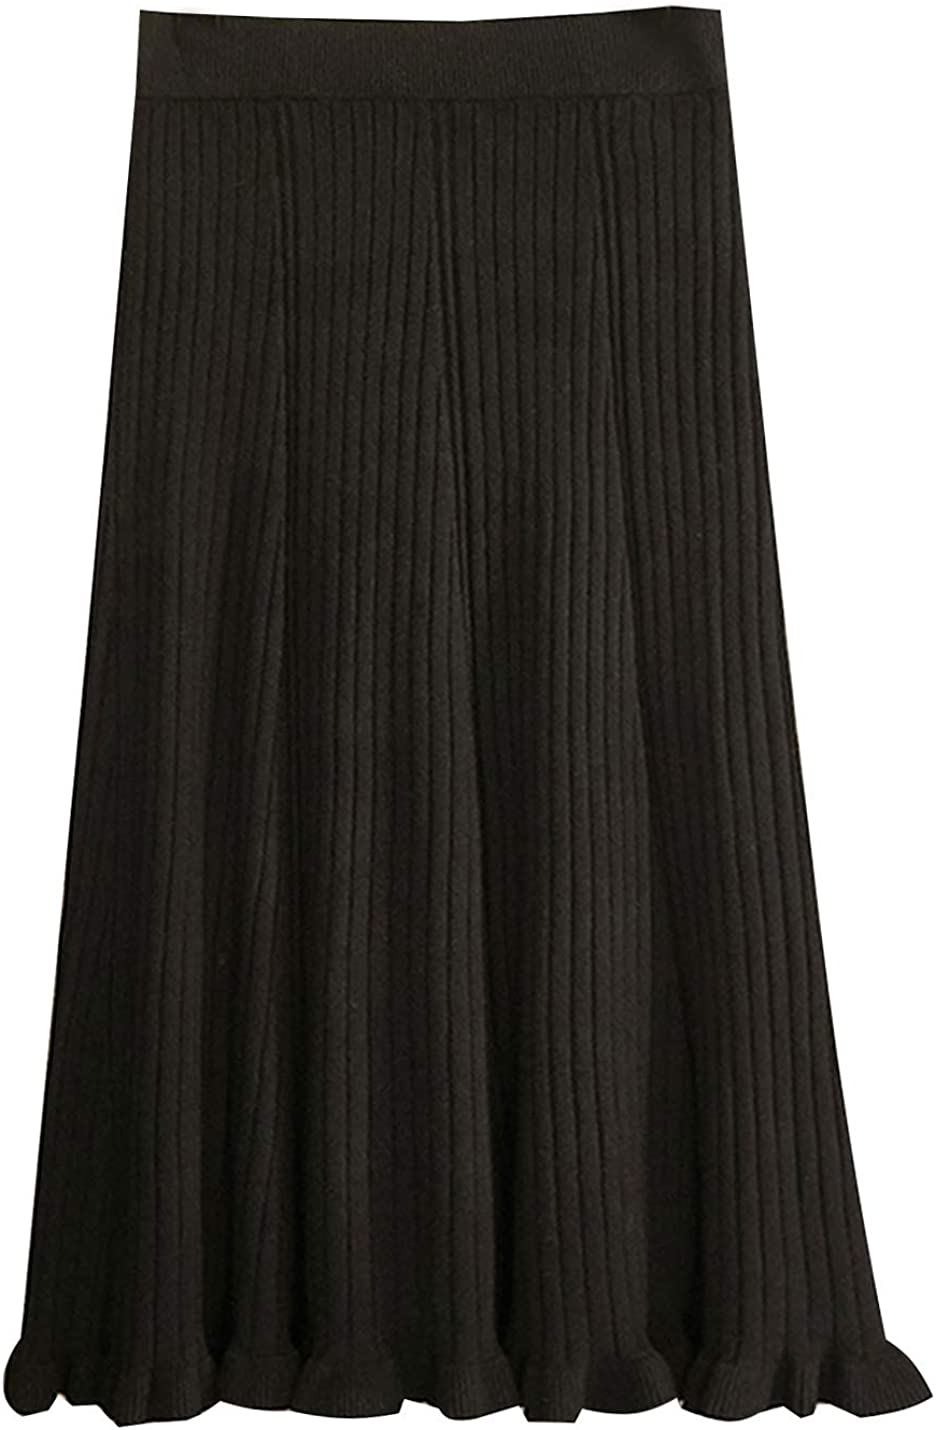 PUWEI Women's Vintage Casual Knit Ruffle A Line Pleated Midi Sweater Skirts